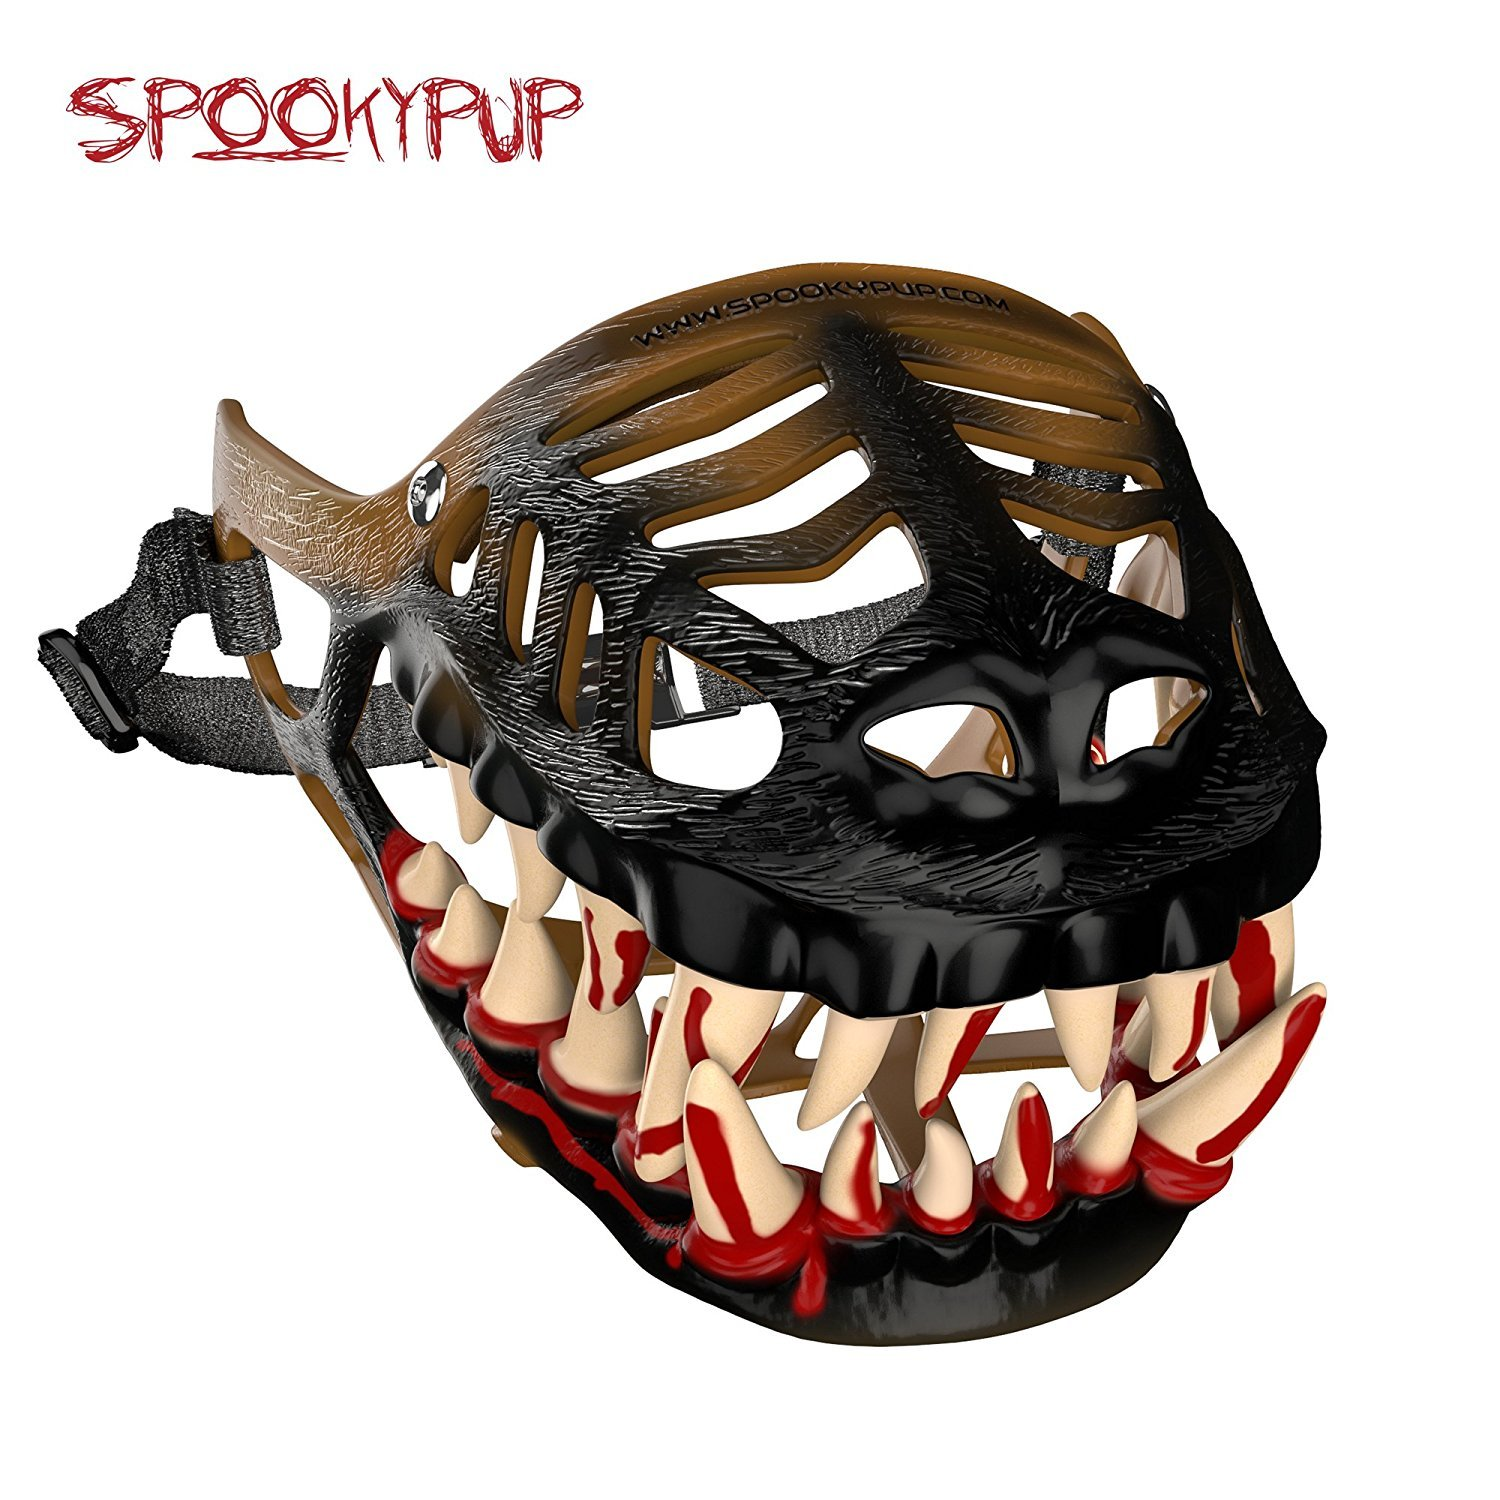 SpookyPup Hilarious Dog Costume Muzzle with Large Scary Teeth - Get Your Dog to Join the Fun (X-Large)